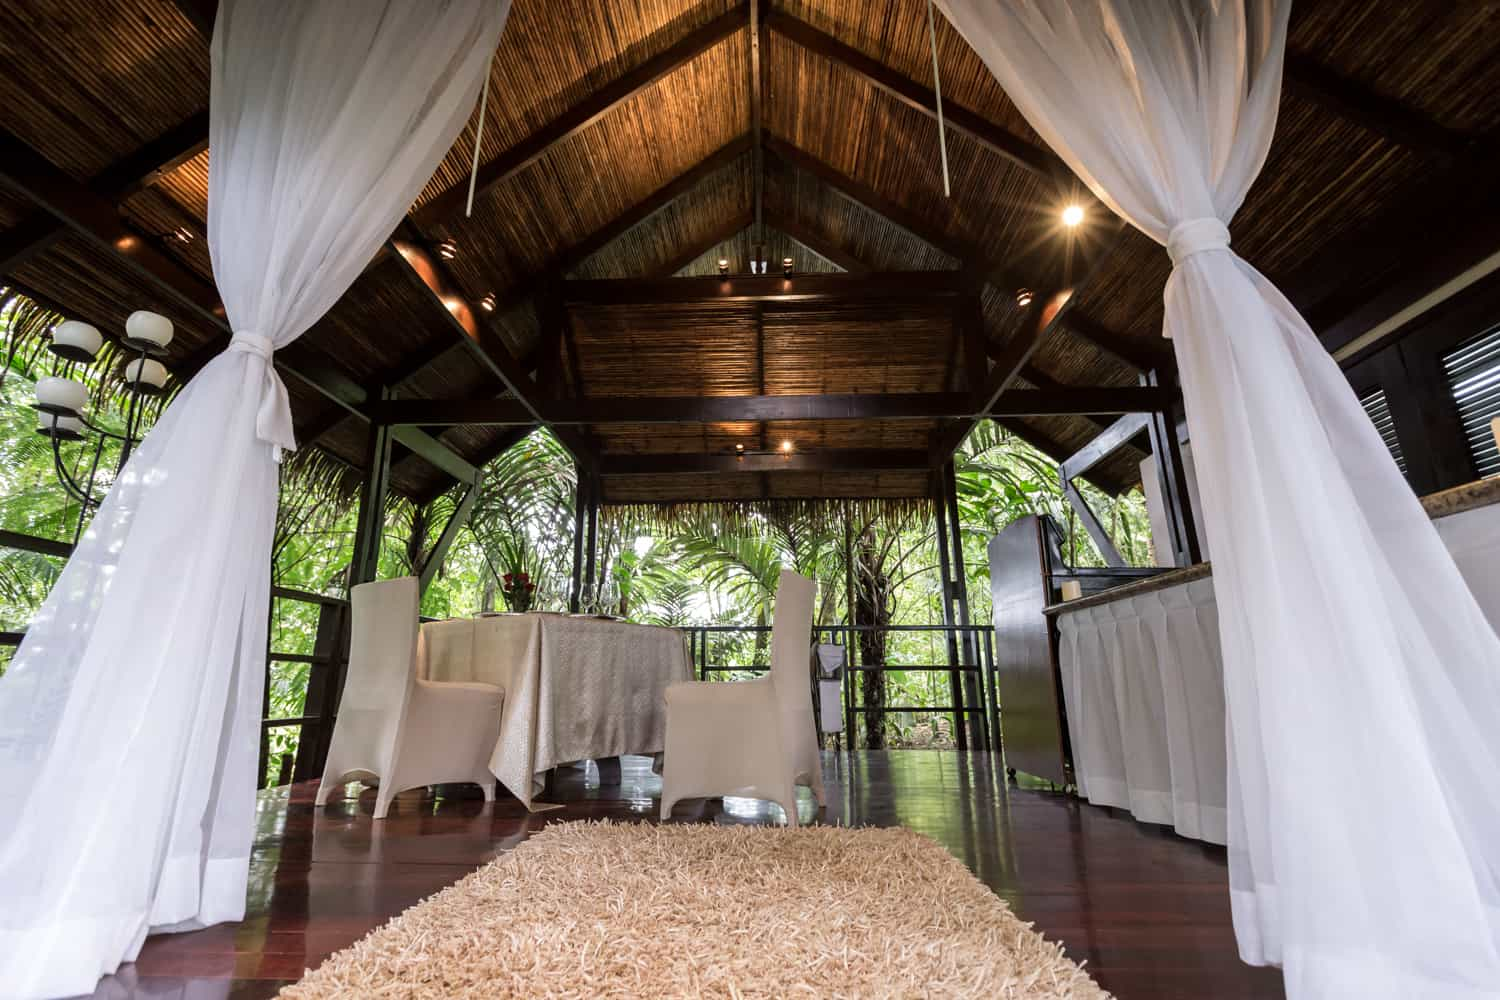 Unique location for elopement or small ceremony at Tabacon.